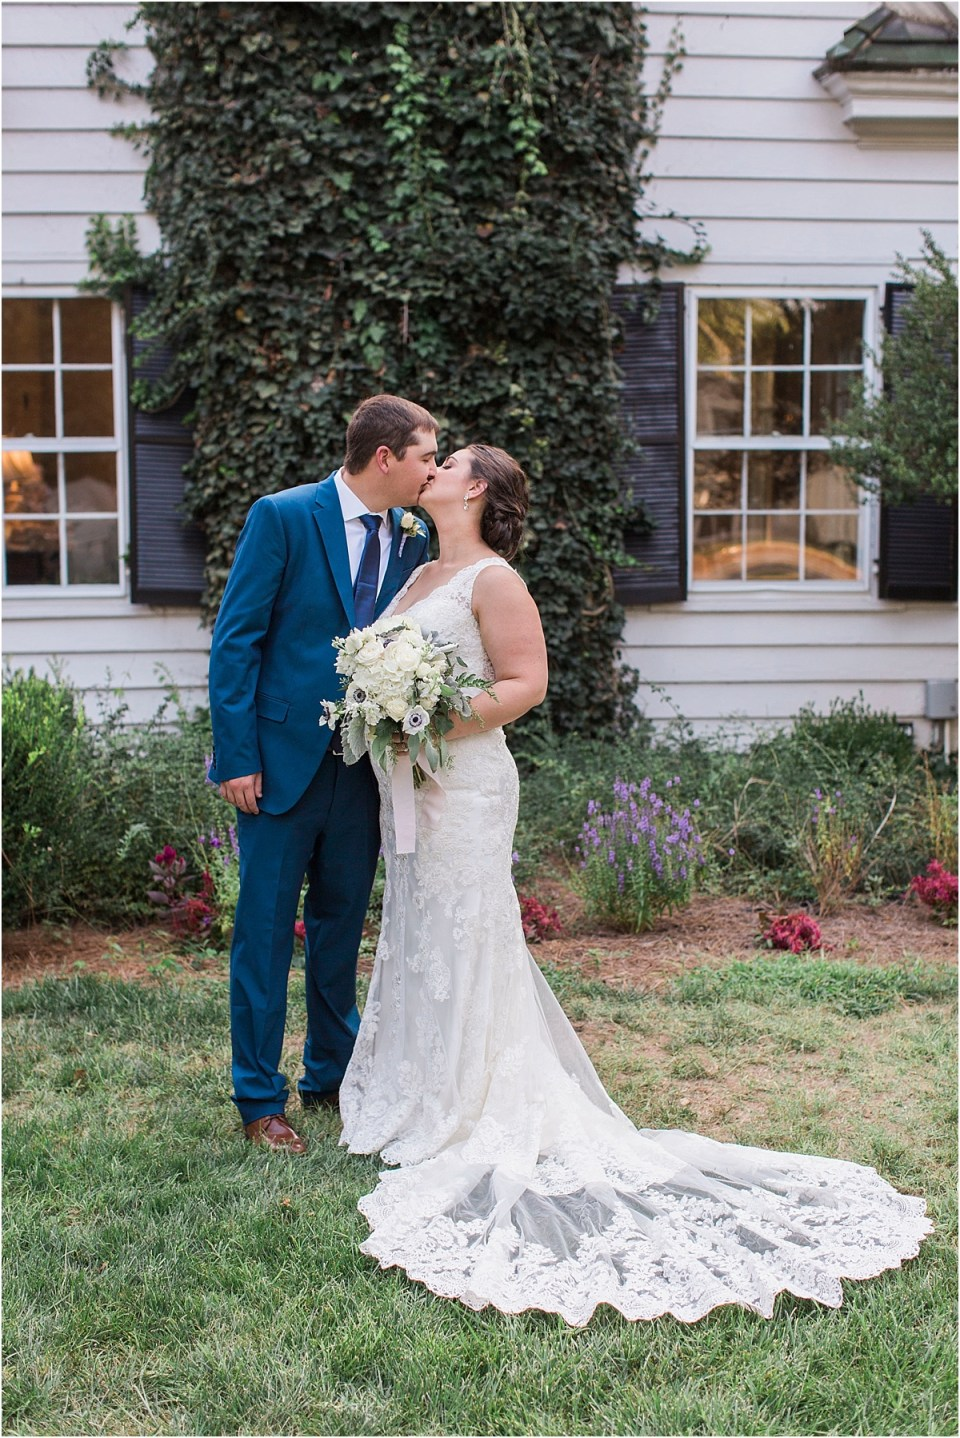 North Carolina wedding at Morehead Inn with Amber Lea Photography.